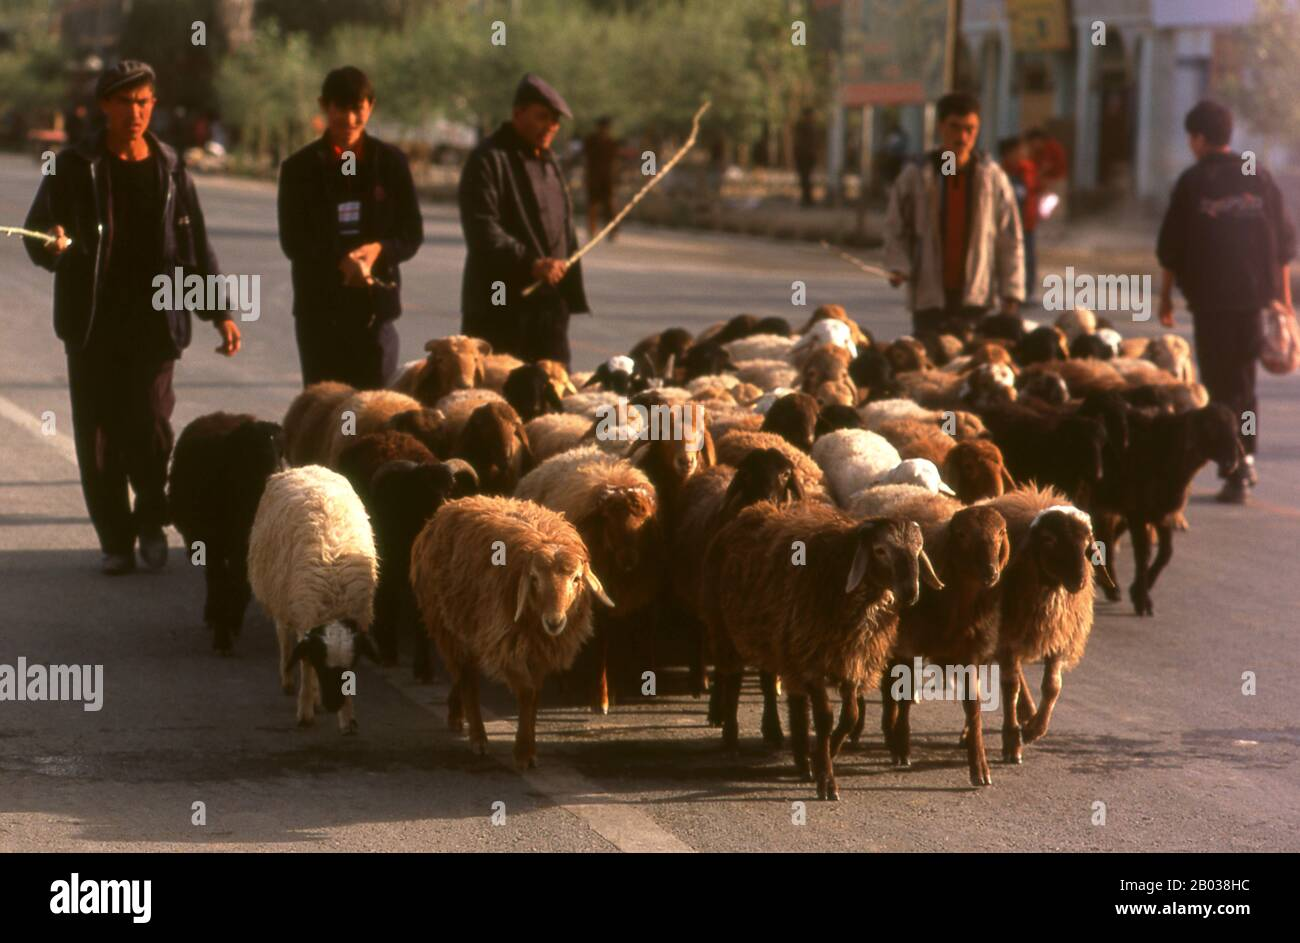 The earliest mention of Kashgar occurs when a Chinese Han Dynasty (206 BCE – 220 CE) envoy traveled the Northern Silk Road to explore lands to the west.  Another early mention of Kashgar is during the Former Han (also known as the Western Han Dynasty), when in 76 BCE the Chinese conquered the Xiongnu, Yutian (Khotan), Sulei (Kashgar), and a group of states in the Tarim basin almost up to the foot of the Tian Shan mountains.  Ptolemy spoke of Scythia beyond the Imaus, which is in a 'Kasia Regio', probably exhibiting the name from which Kashgar is formed.  The country's people practised Zoroastr Stock Photo